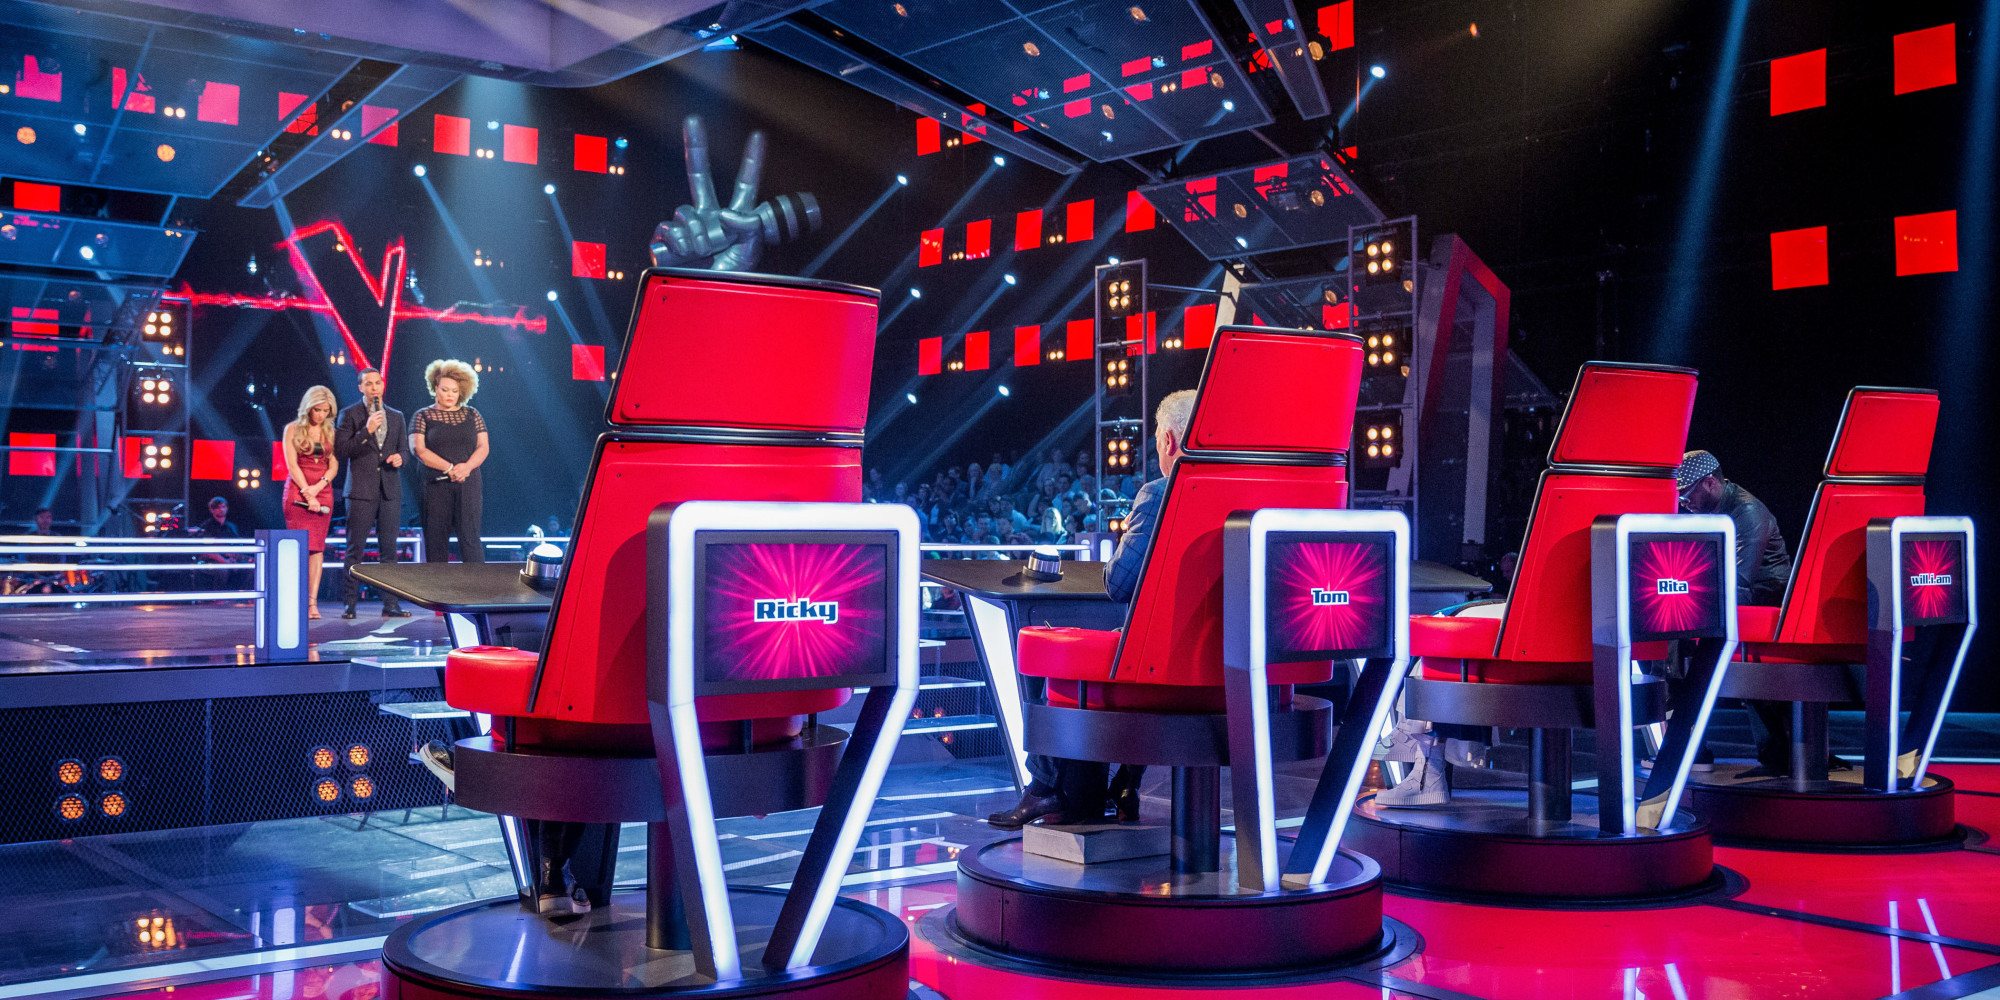 U0026 39 The Voice U0026 39  Uk Bought By Itv  But Could This Spell The End For  U0026 39 The X Factor U0026 39